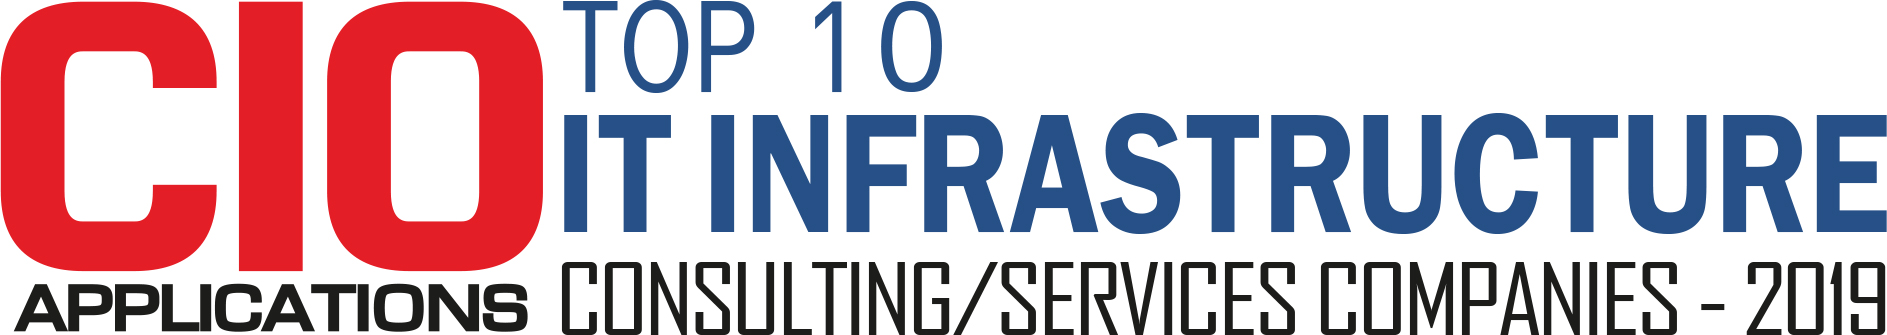 Top 10 IT Infrastructure Consulting/Services Companies - 2019